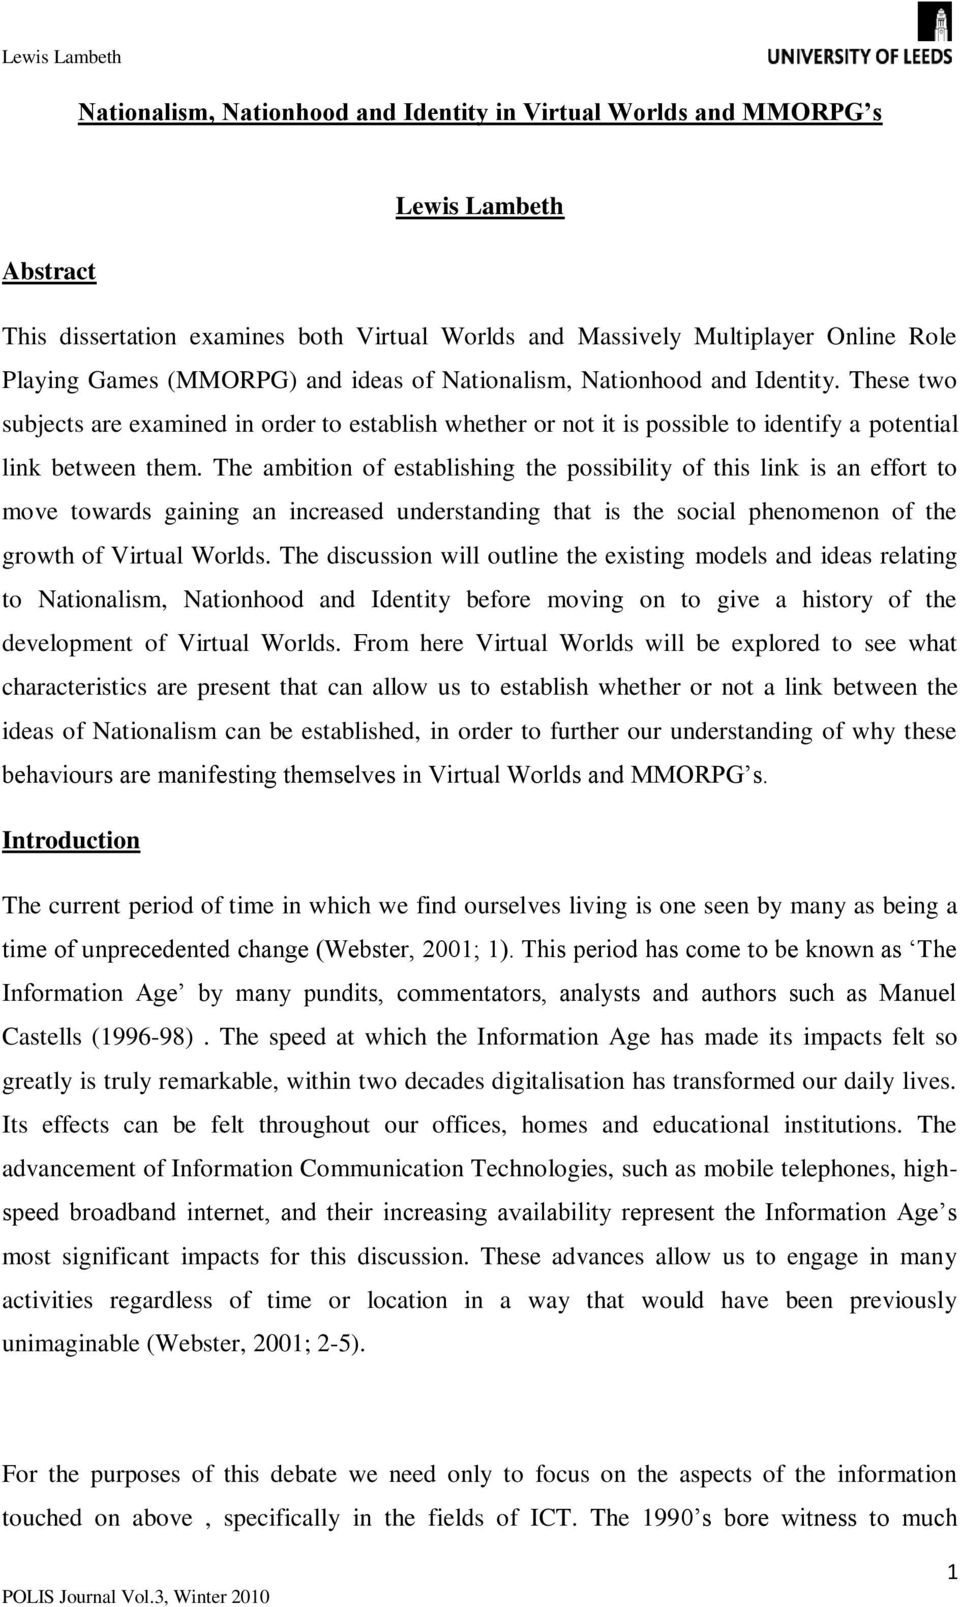 The ambition of establishing the possibility of this link is an effort to move towards gaining an increased understanding that is the social phenomenon of the growth of Virtual Worlds.